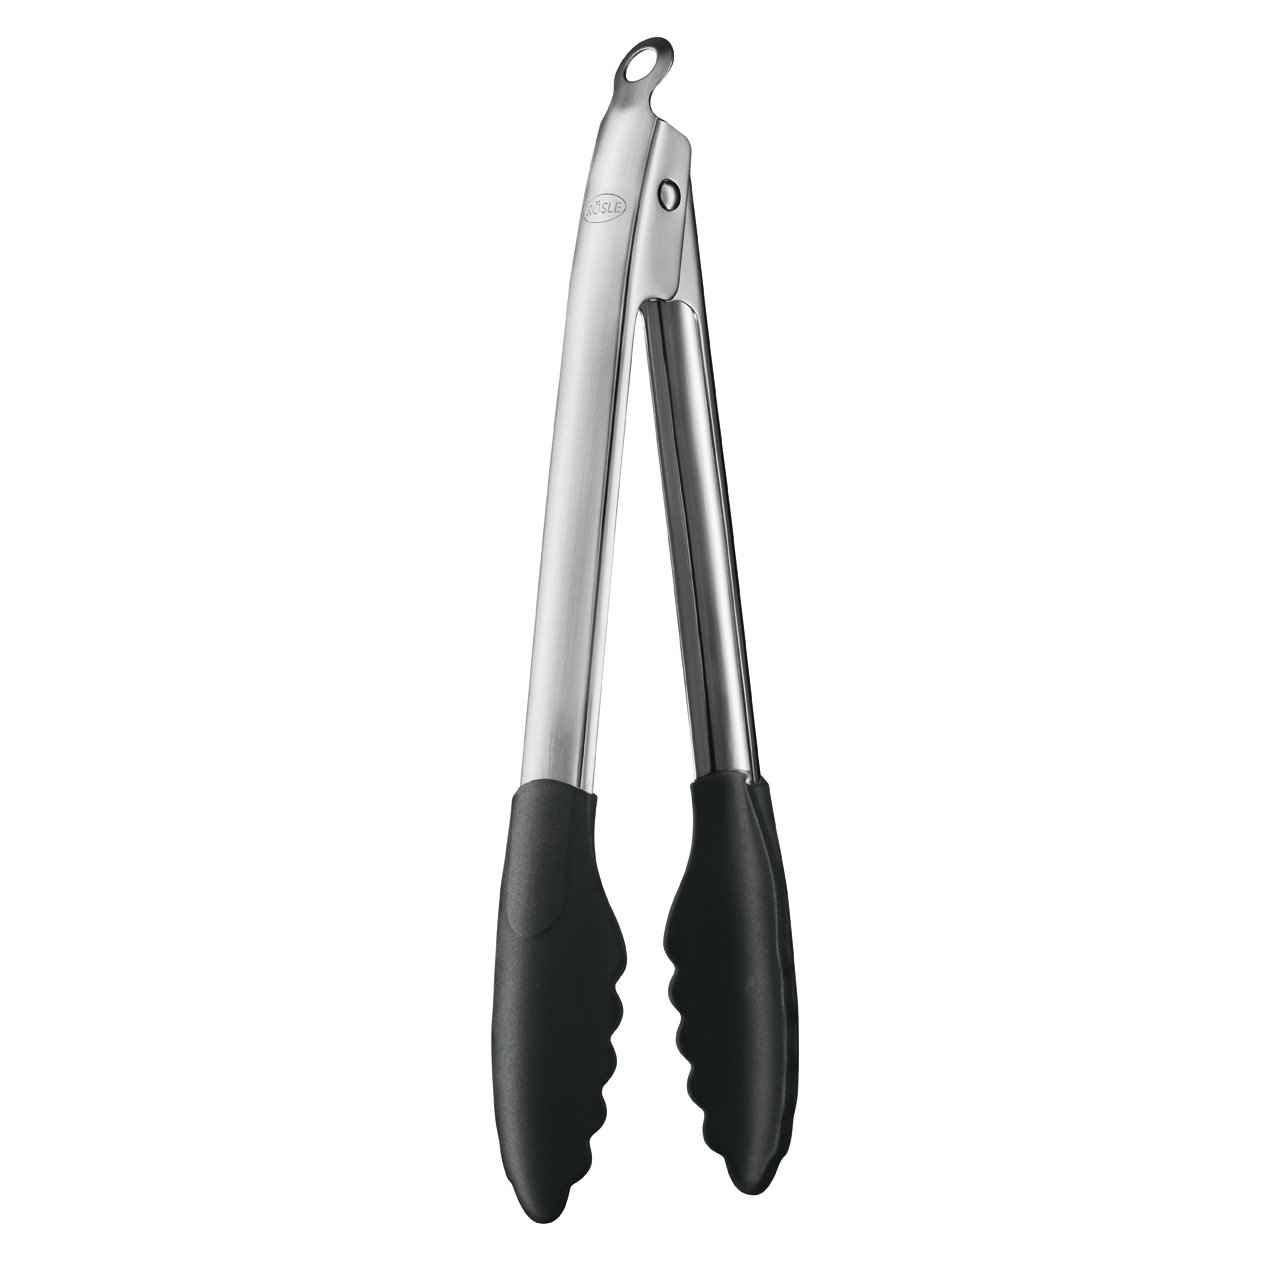 Rösle Stainless Steel Lock and Release Silicone Coated Cooking Tongs, 12-inch by Rosle